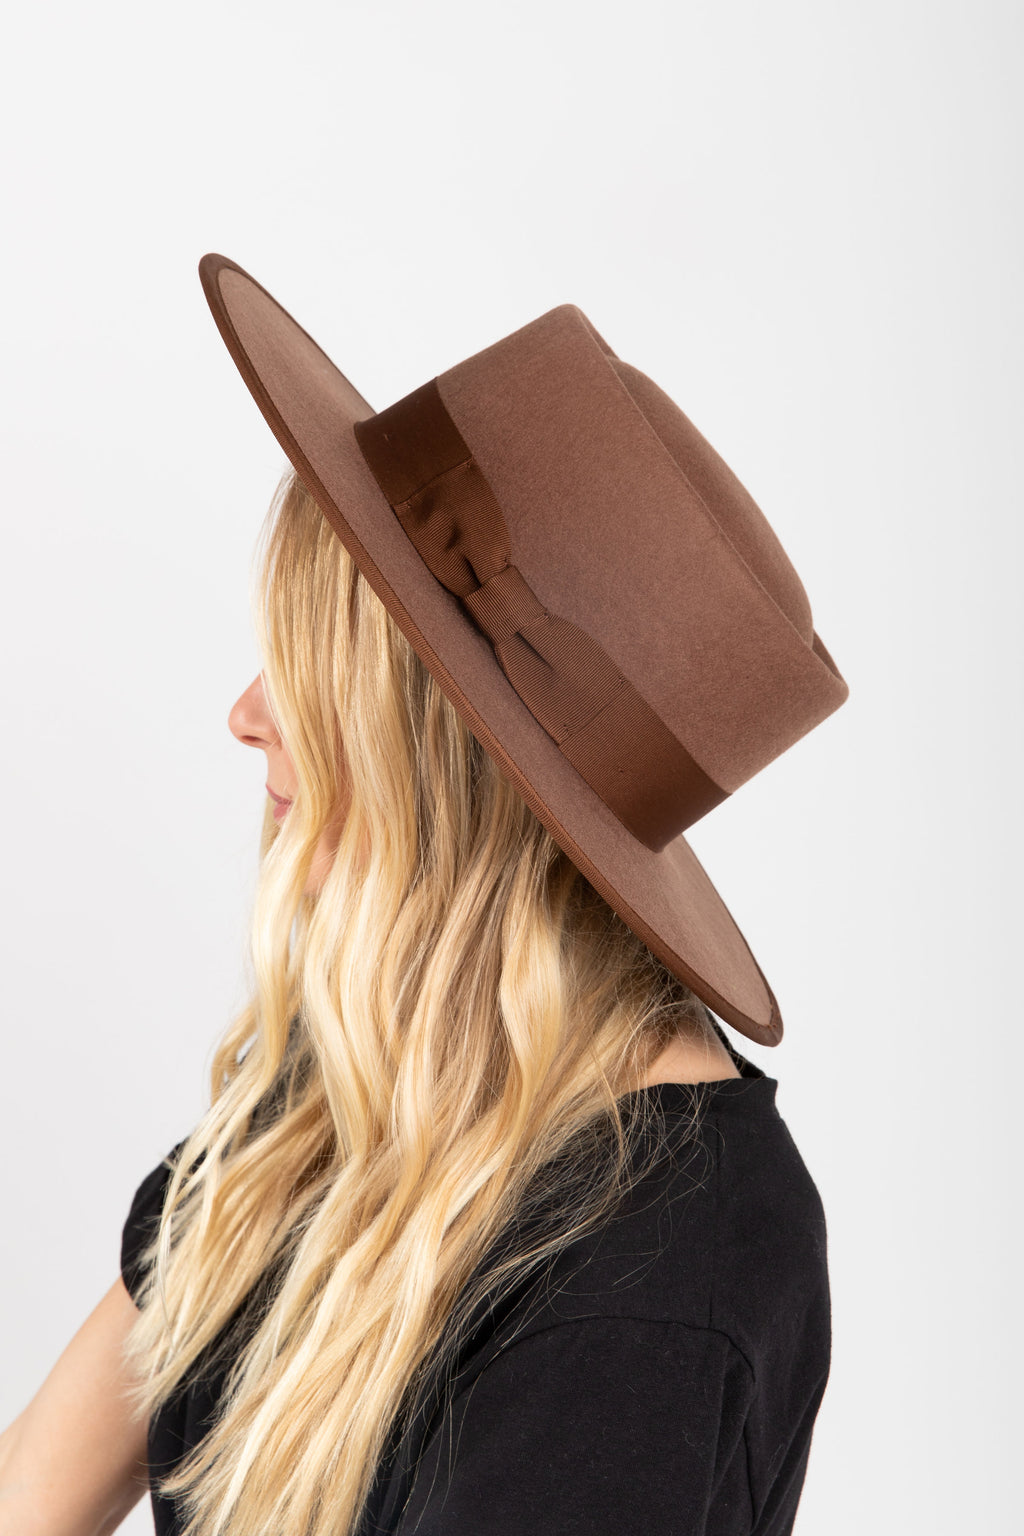 Hat No. 31: Flat Brim Round Top in Cognac